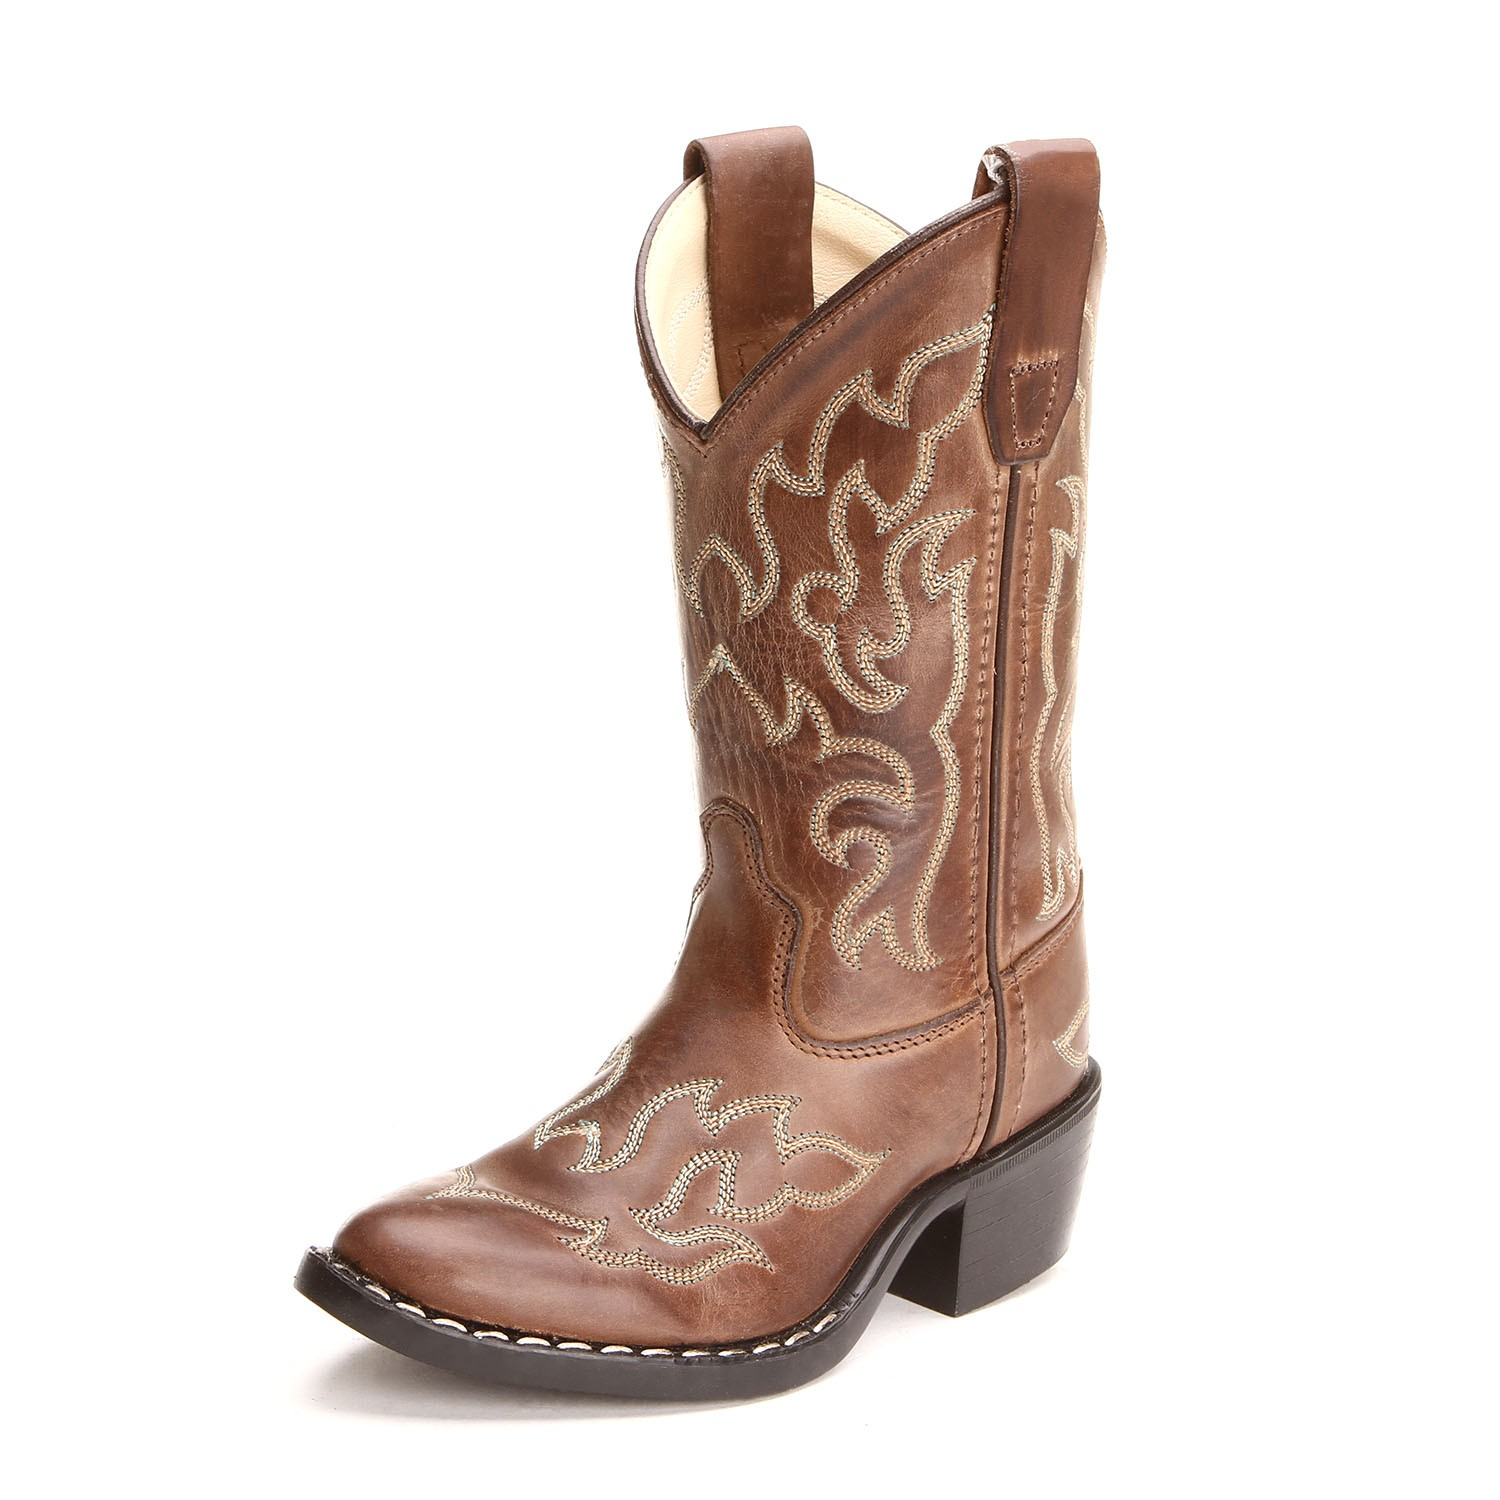 Youth Cowgirl Boots Yfw3QPua